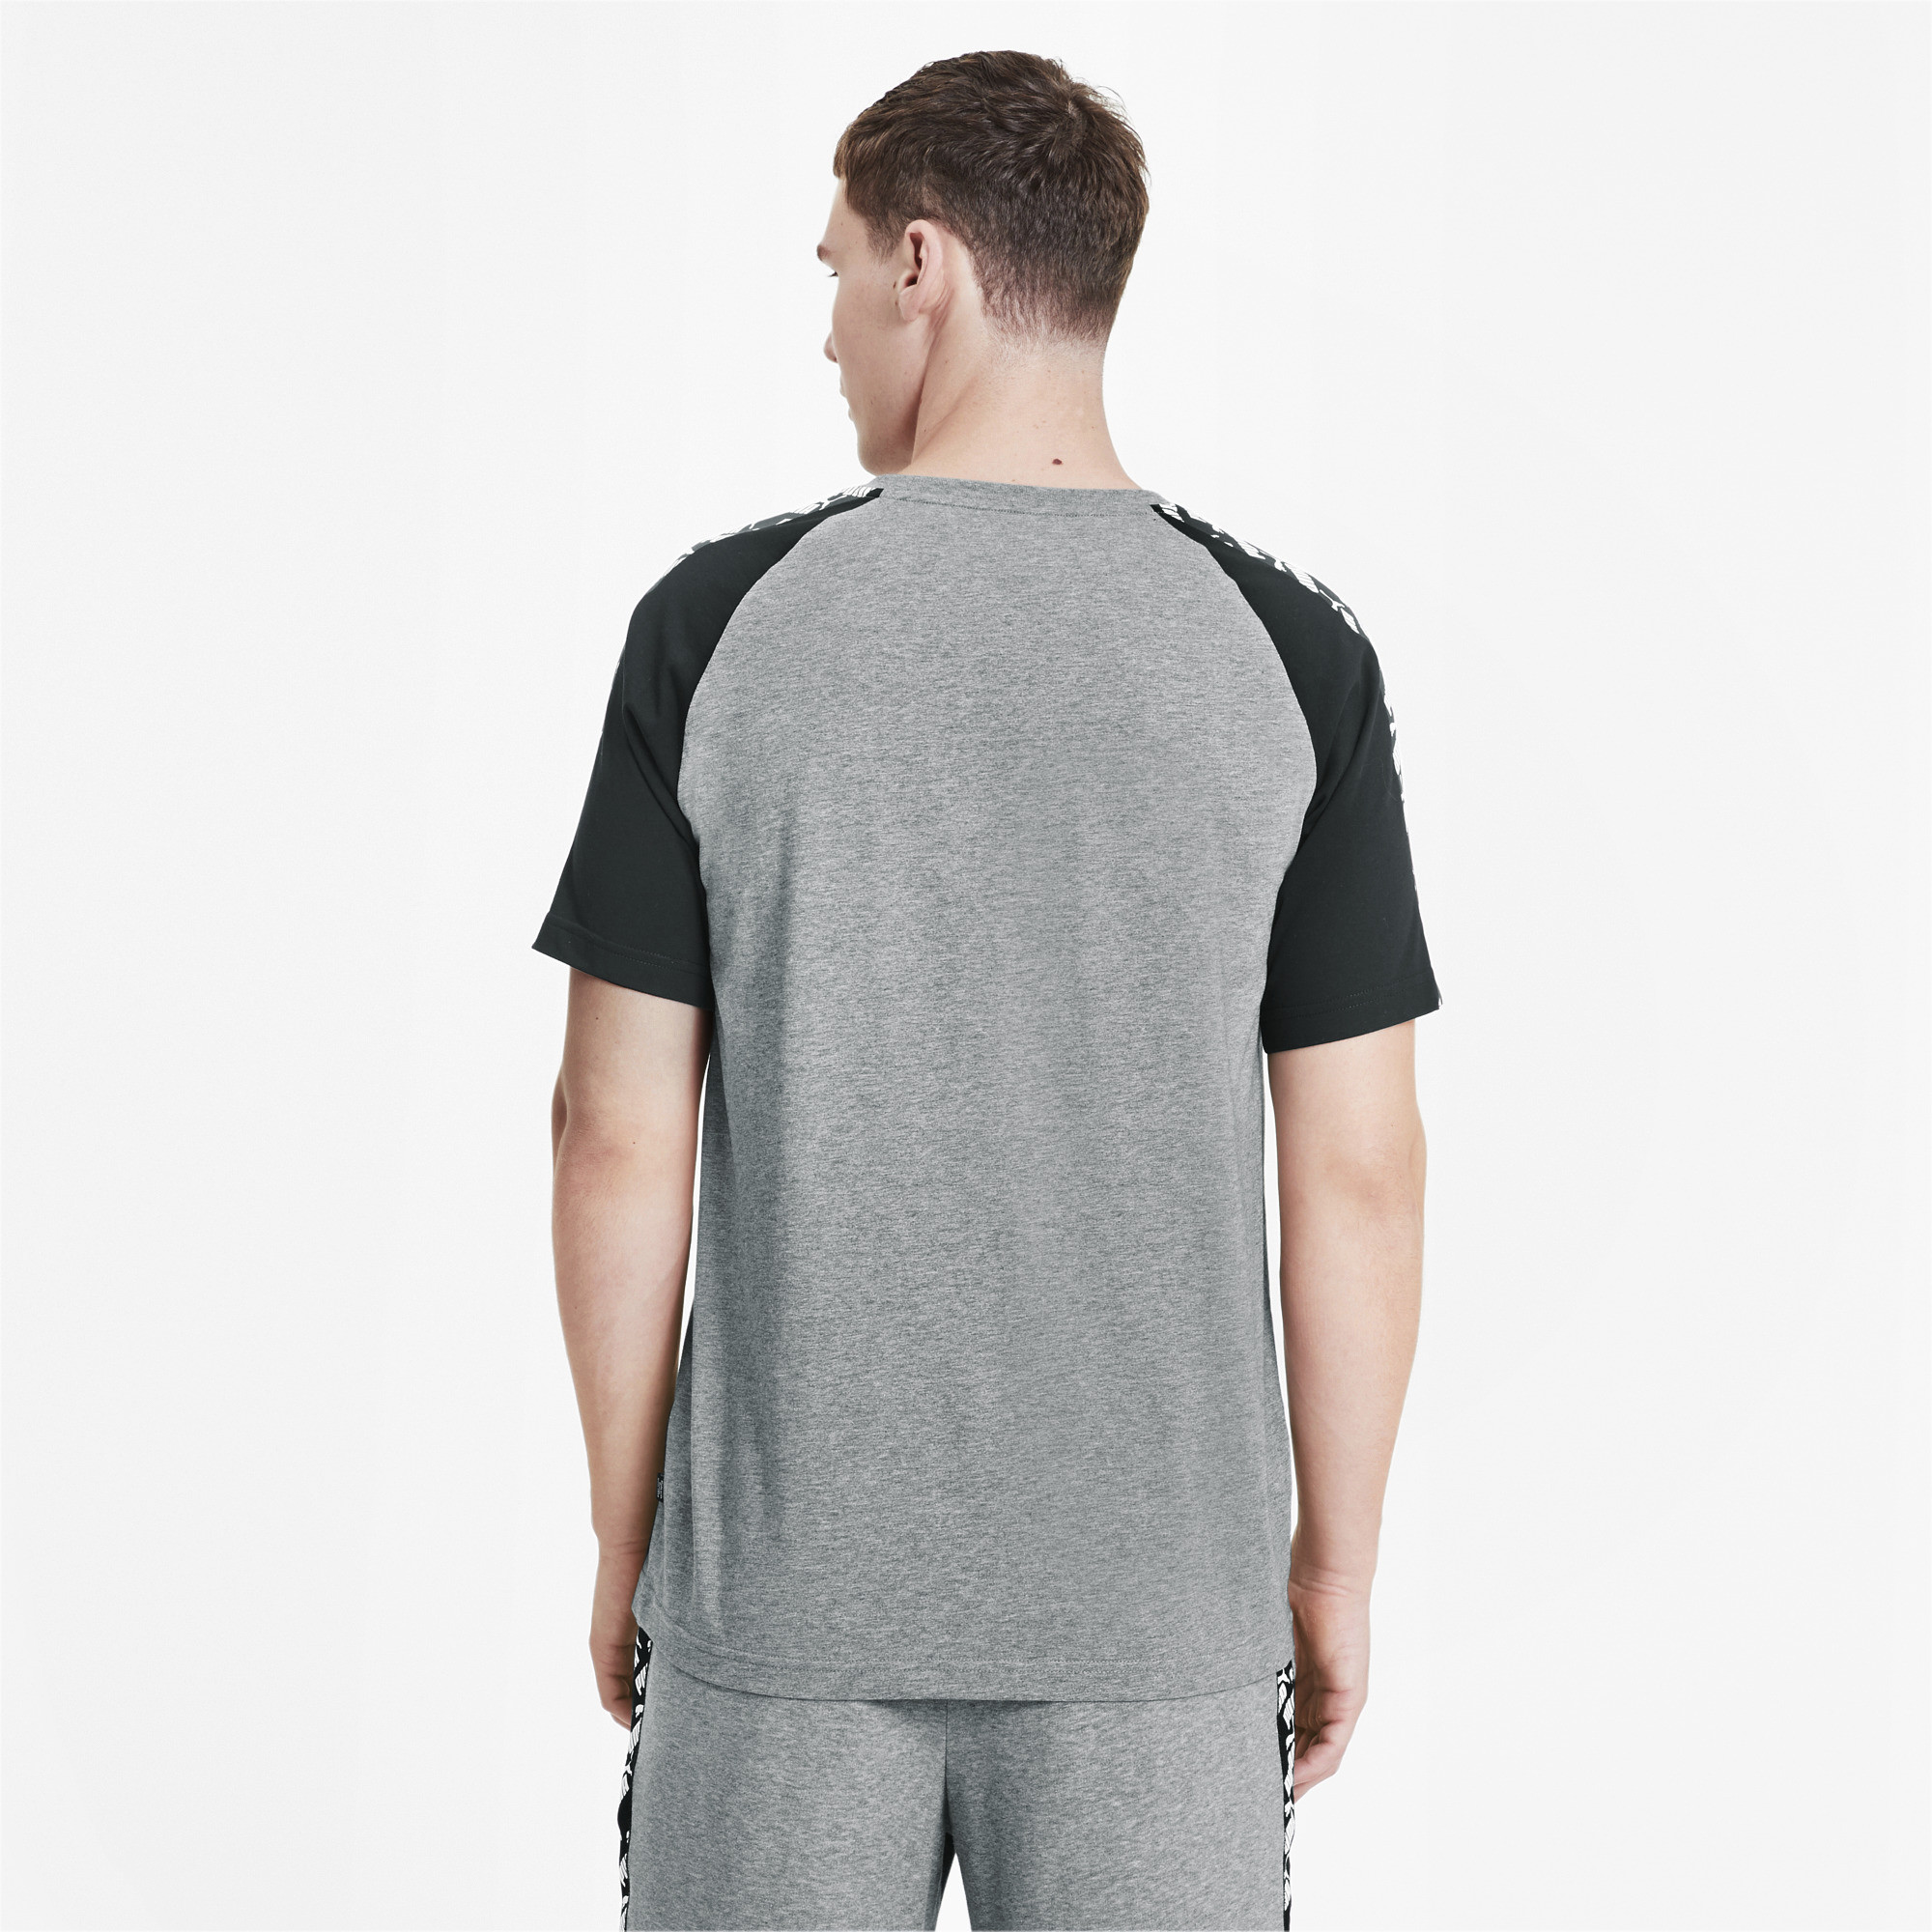 PUMA-Amplified-Men-039-s-Raglan-Tee-Men-Tee-Basics thumbnail 9